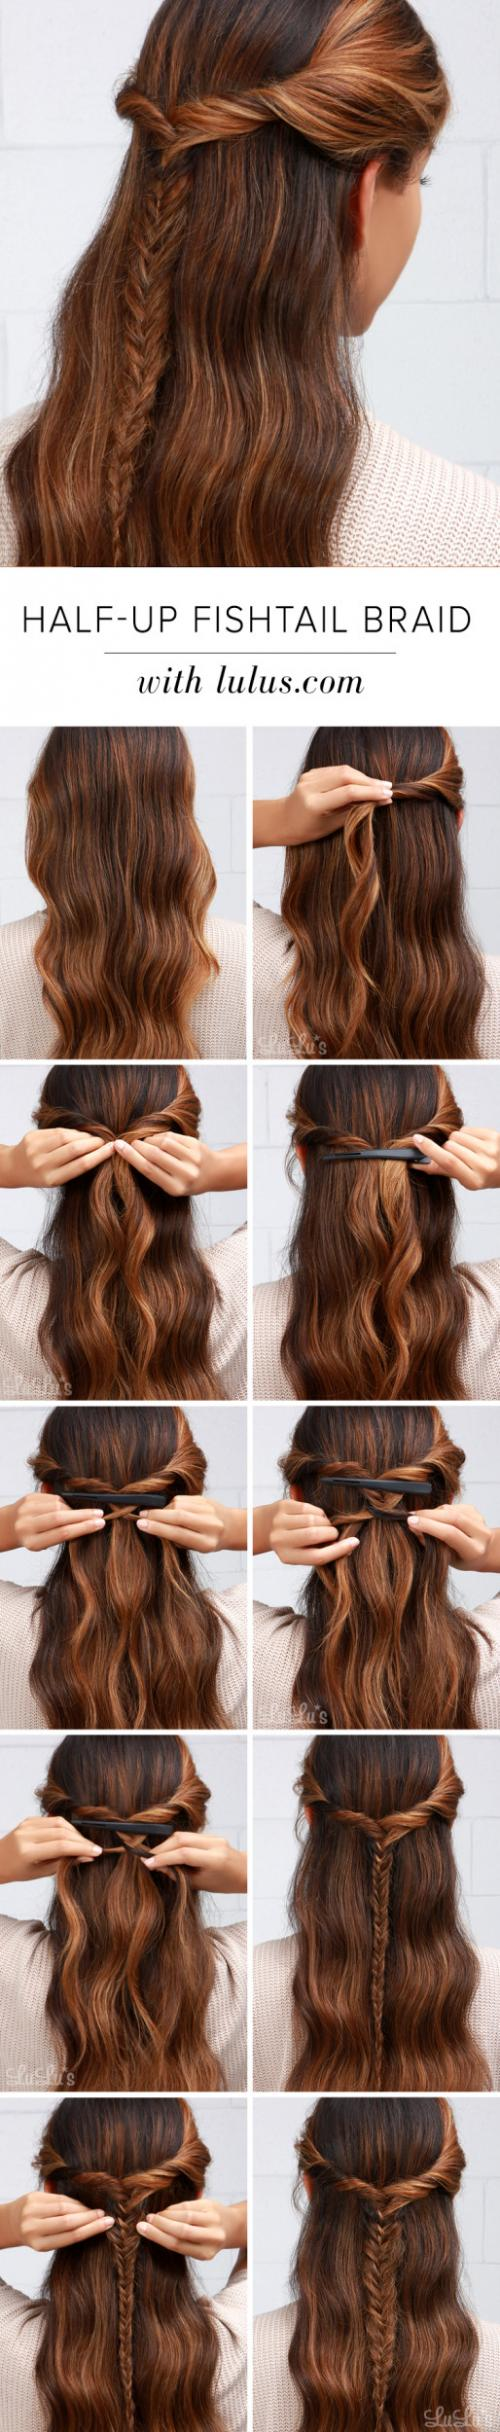 11 Quick And Easy Ways To Style Your Hair In Less Than 2 Minutes, The Right Tips For your Busy Mornings